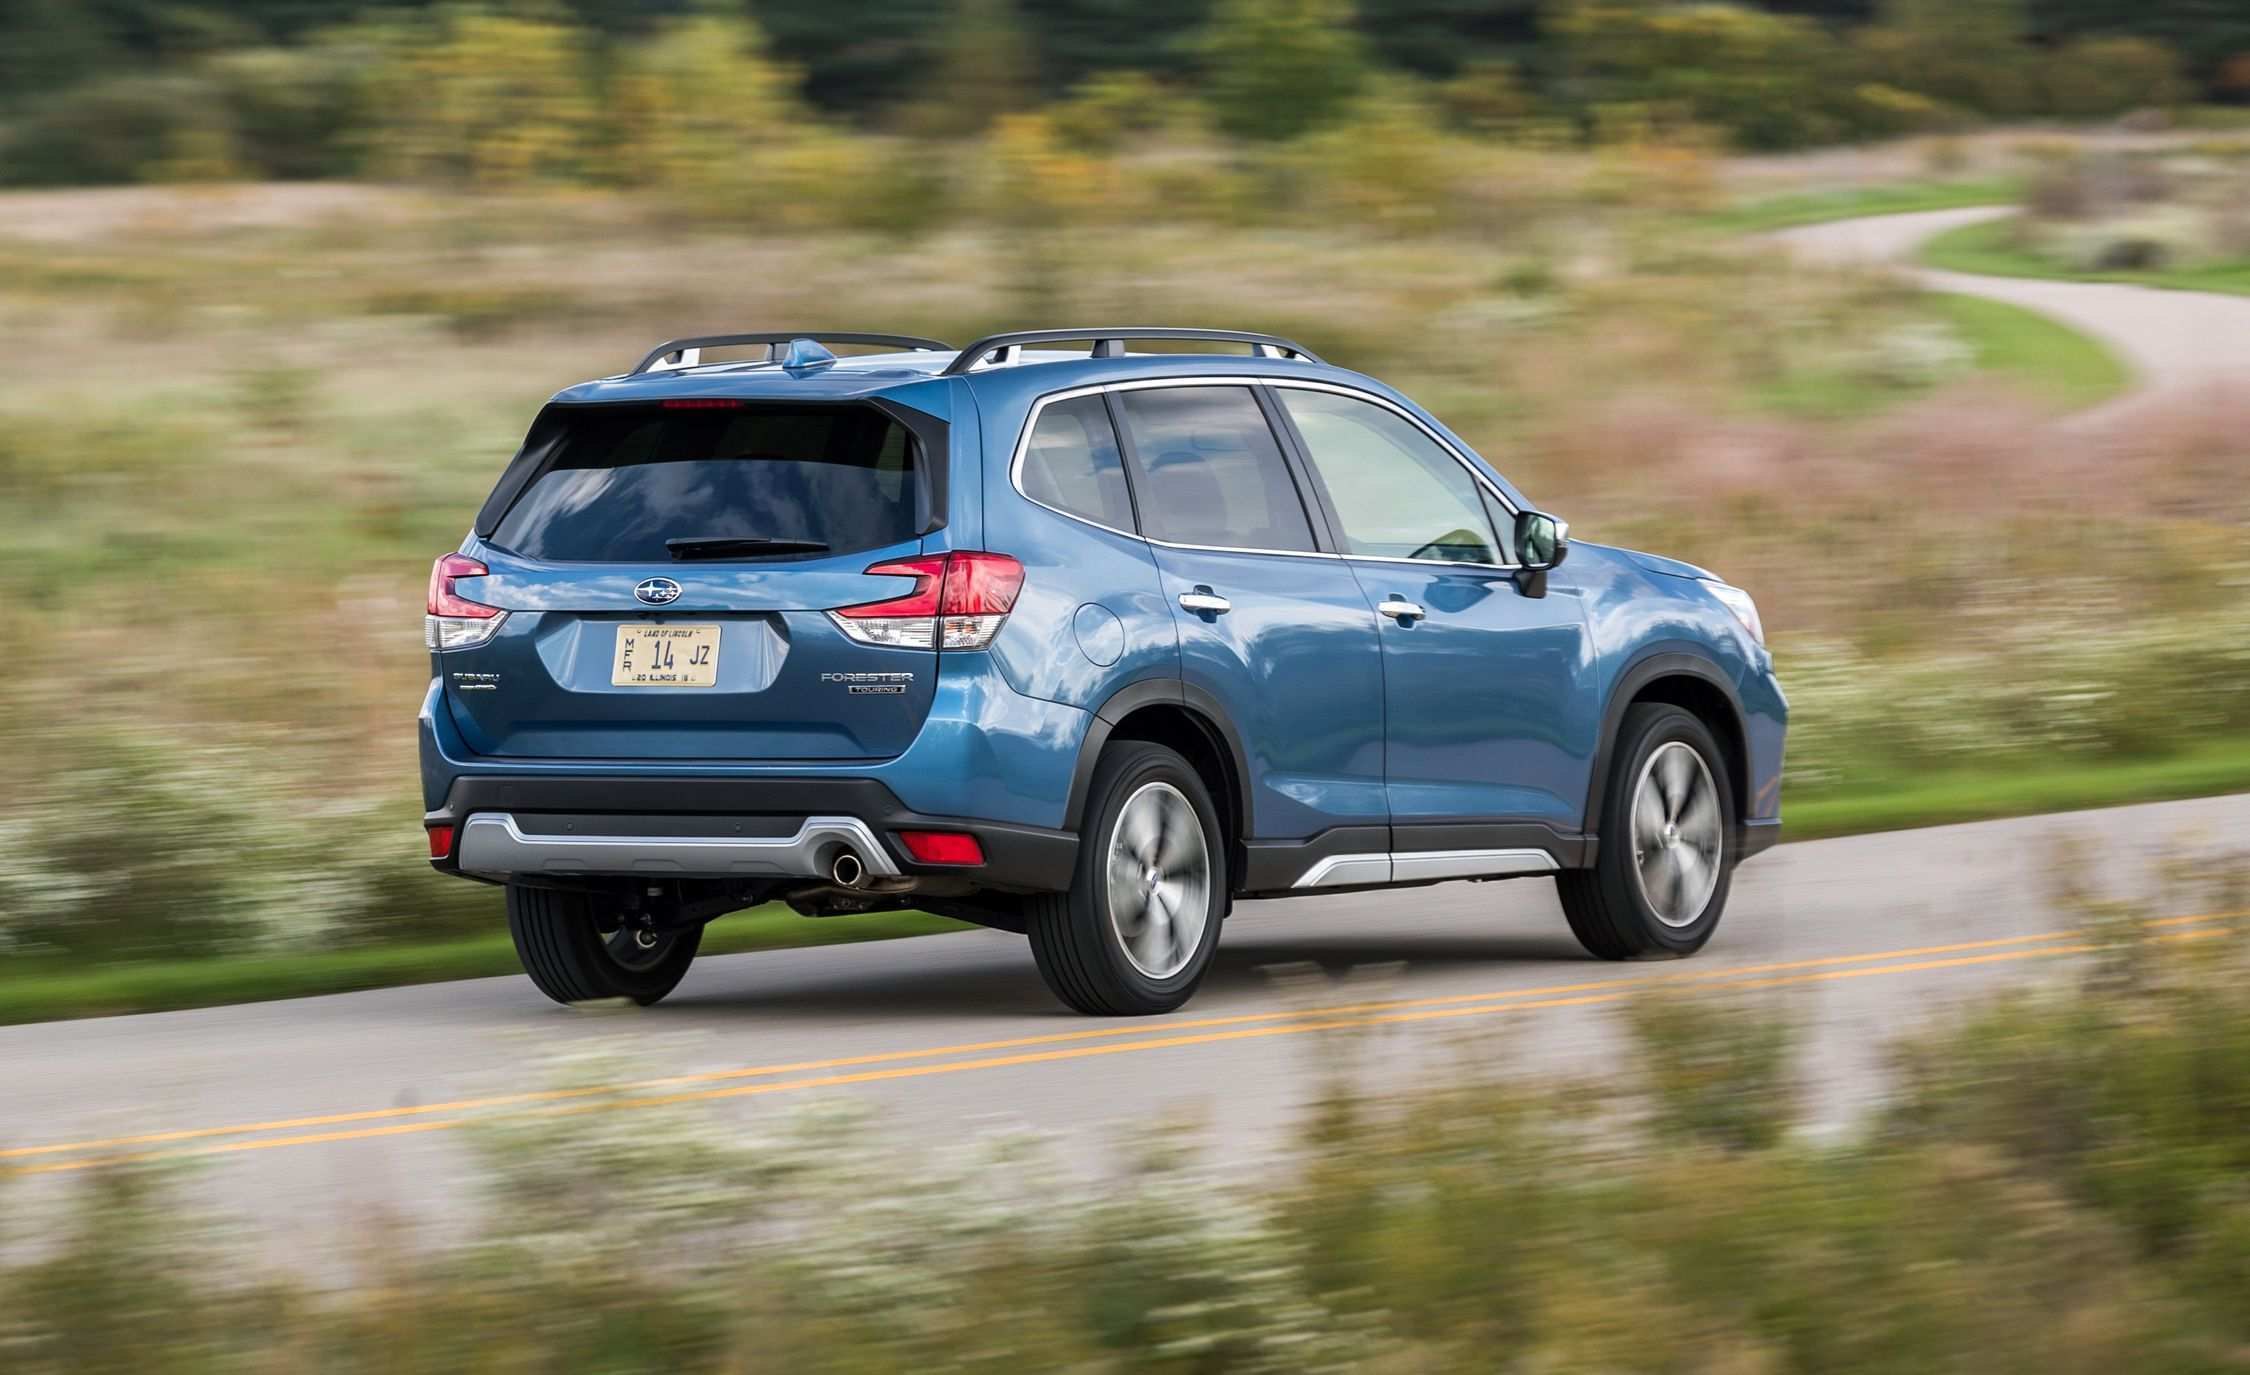 83 Best Review 2019 Subaru Forester Debut Price and Review for 2019 Subaru Forester Debut